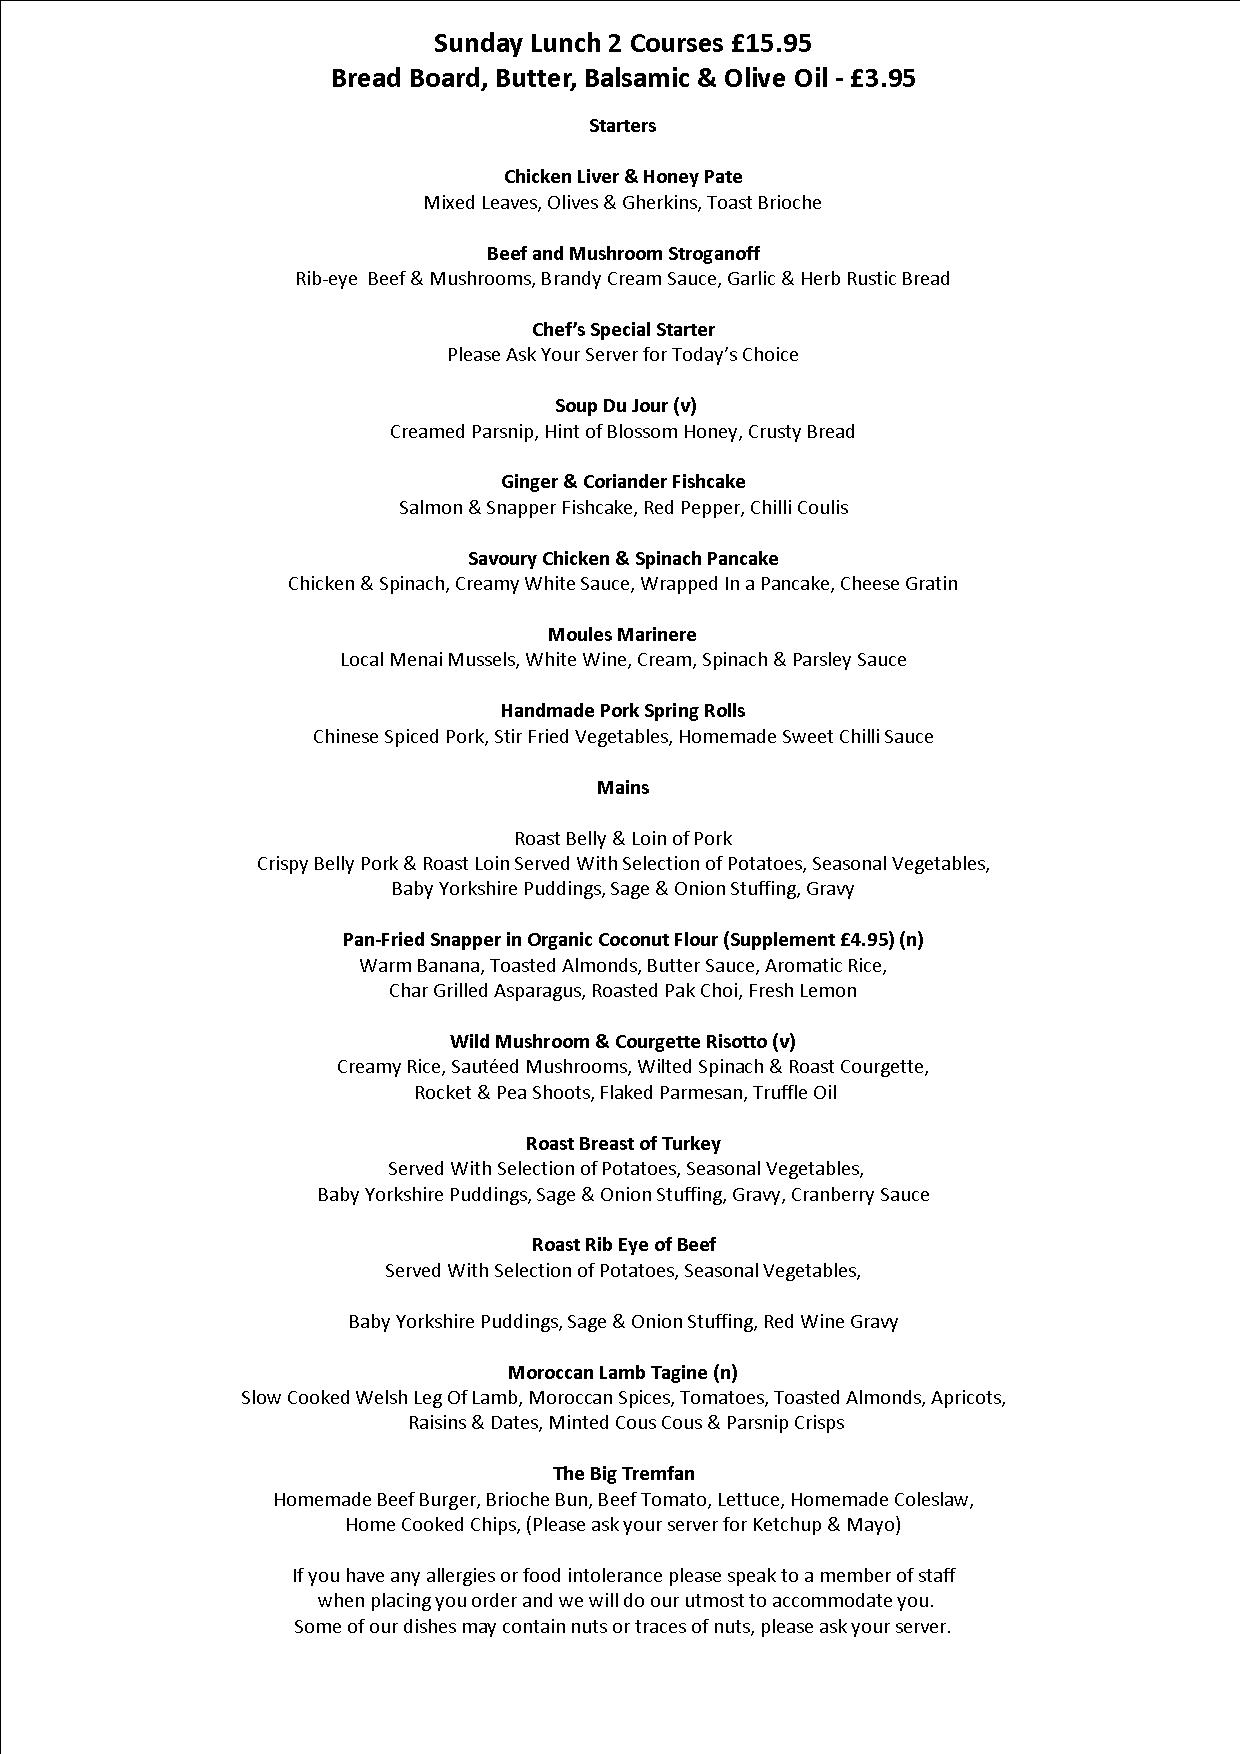 Sunday Lunch 2 courses Starter & Main £17.95